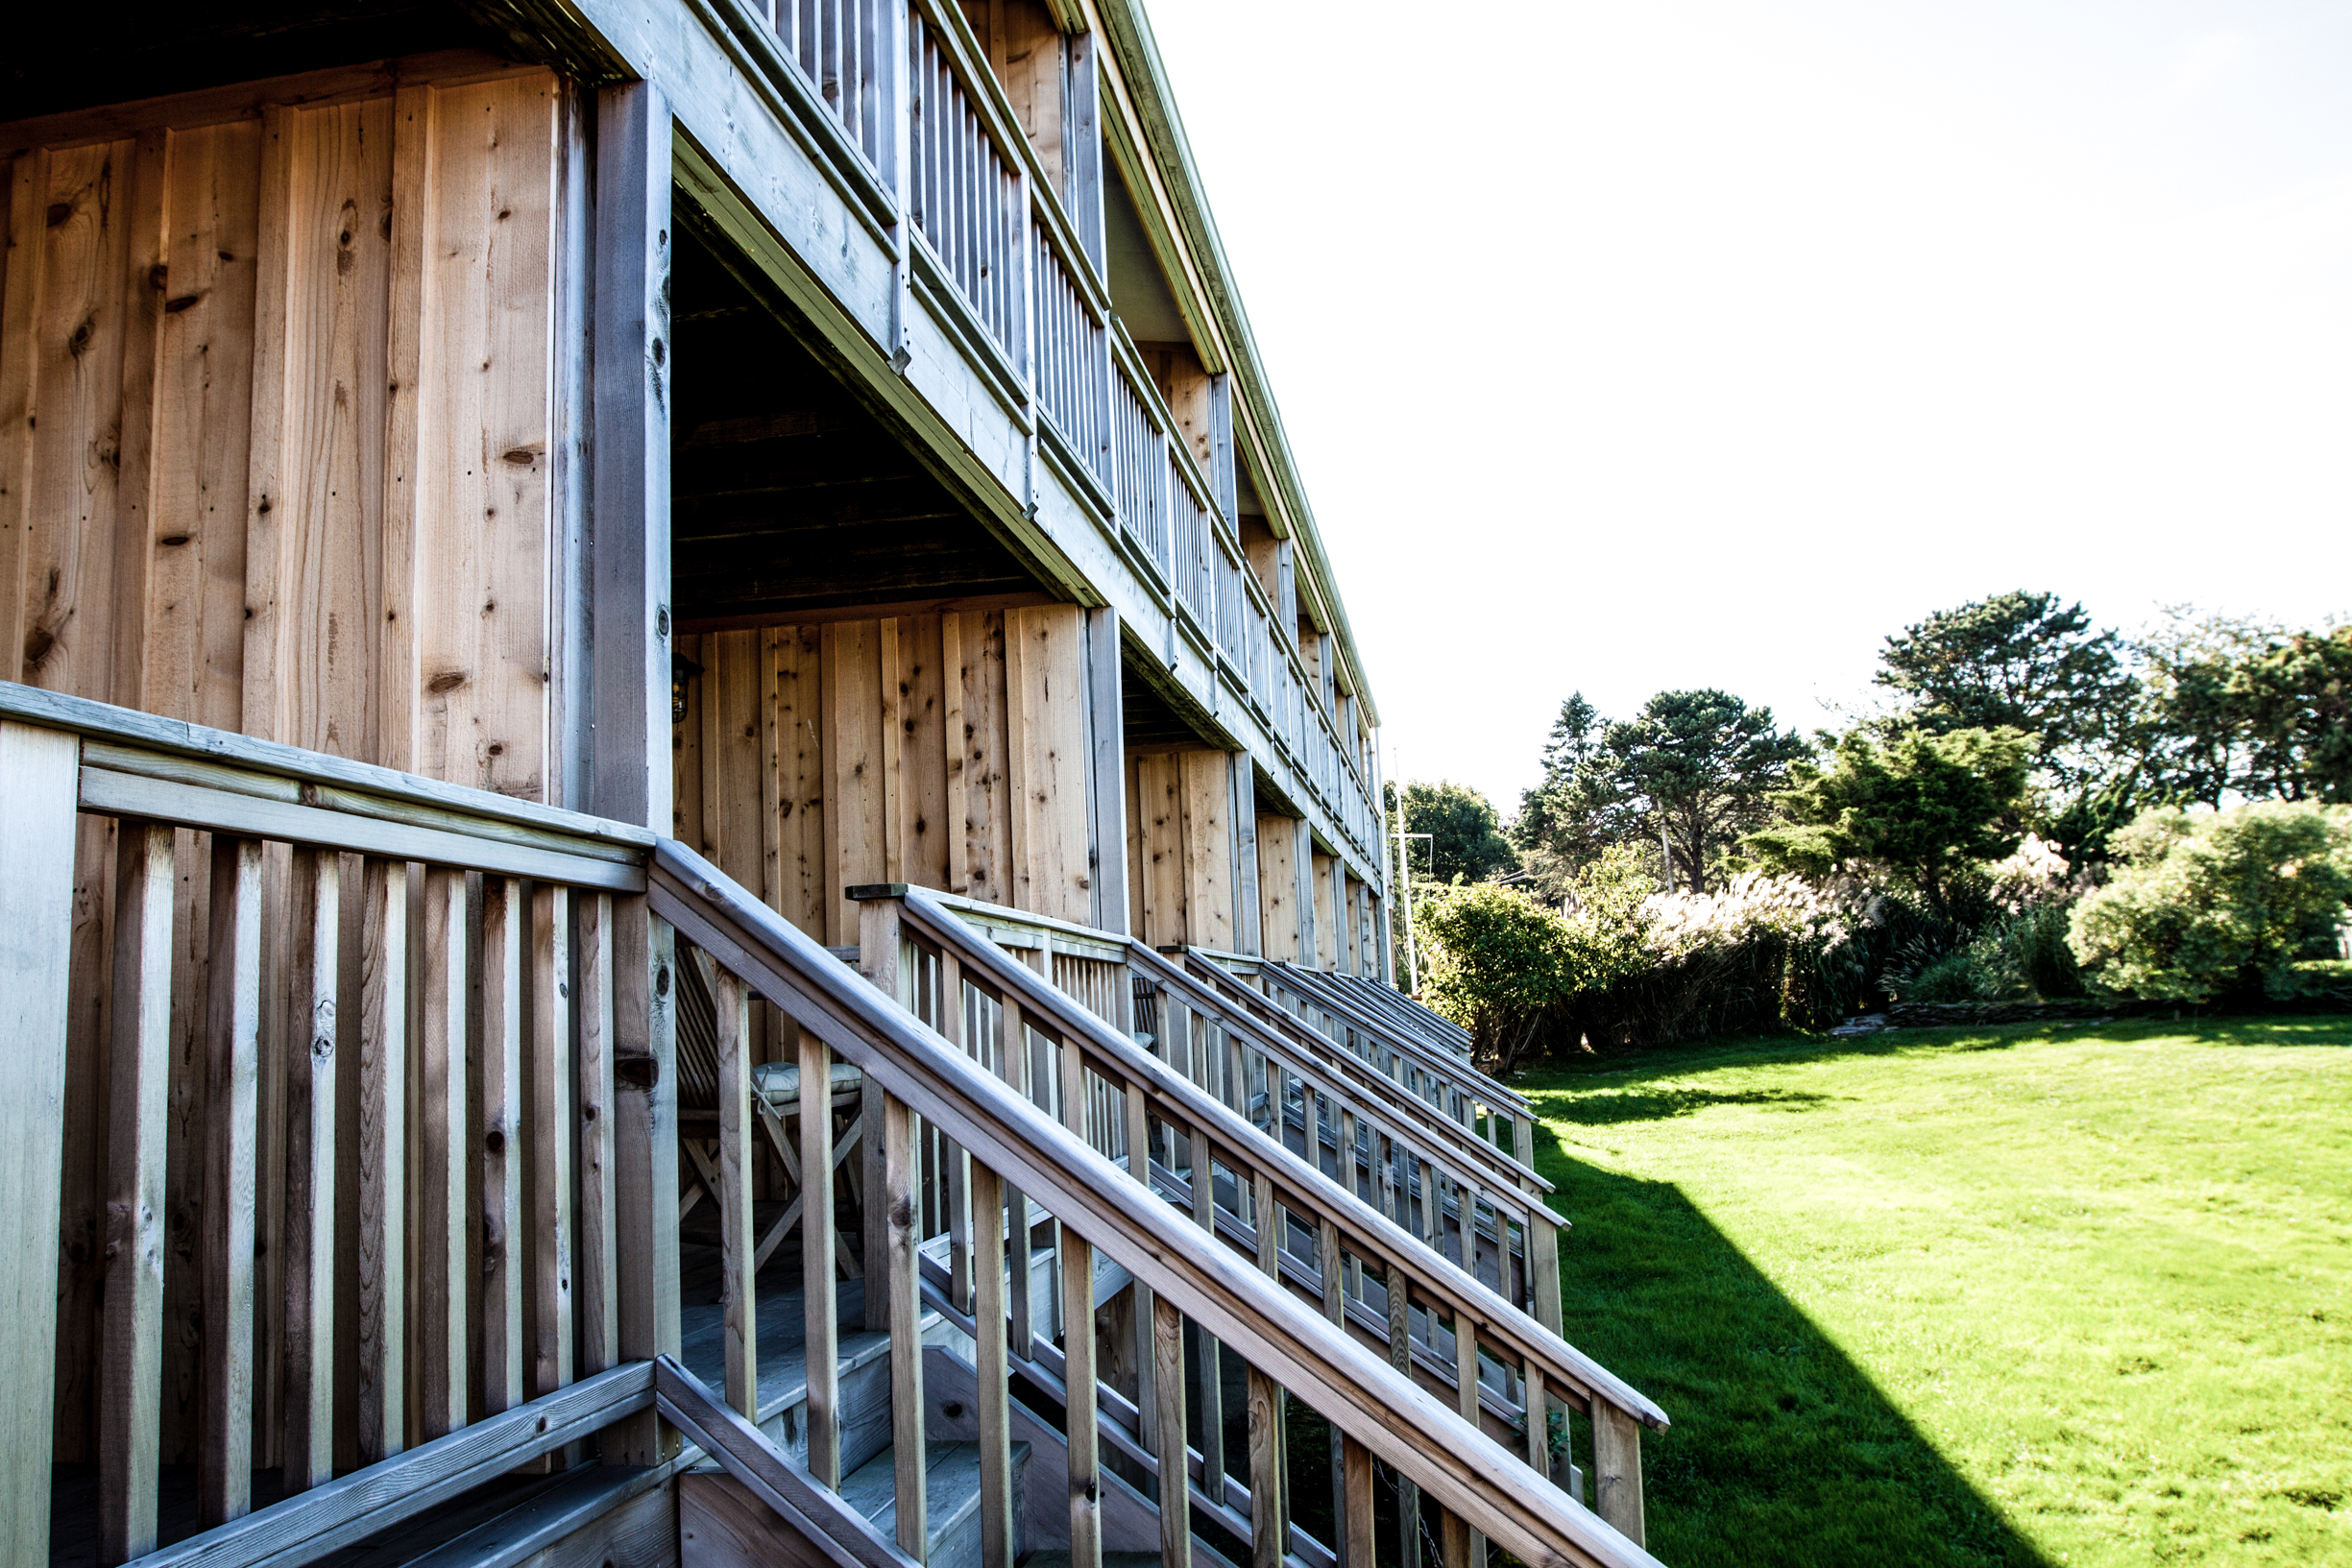 Hotel and restaurant surf shack in Montauk, New York with wood siding